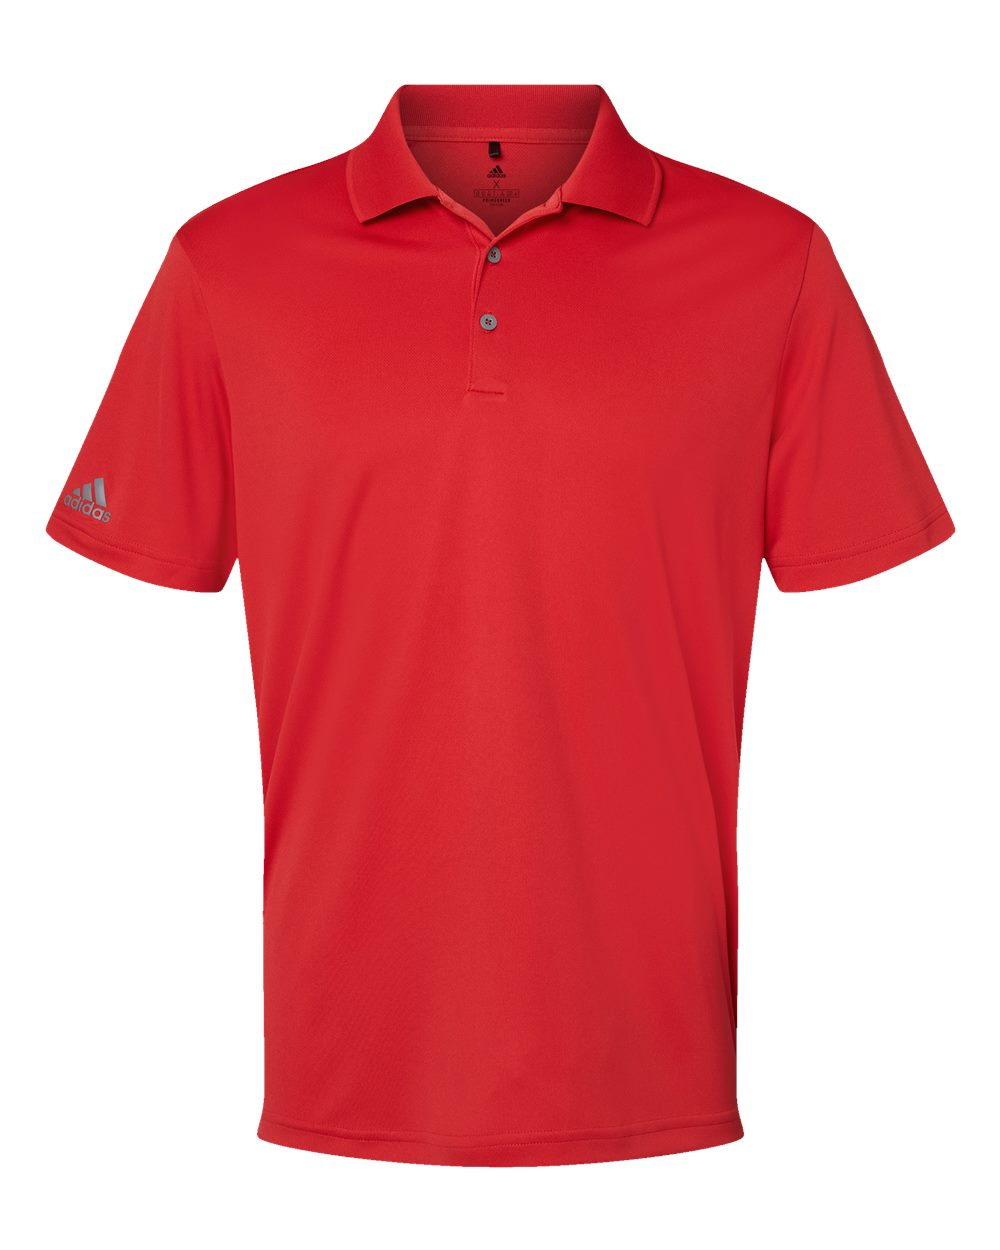 Adidas-Performance-Sport-Shirt-Polo-Button-A230-up-to-4XL miniature 16